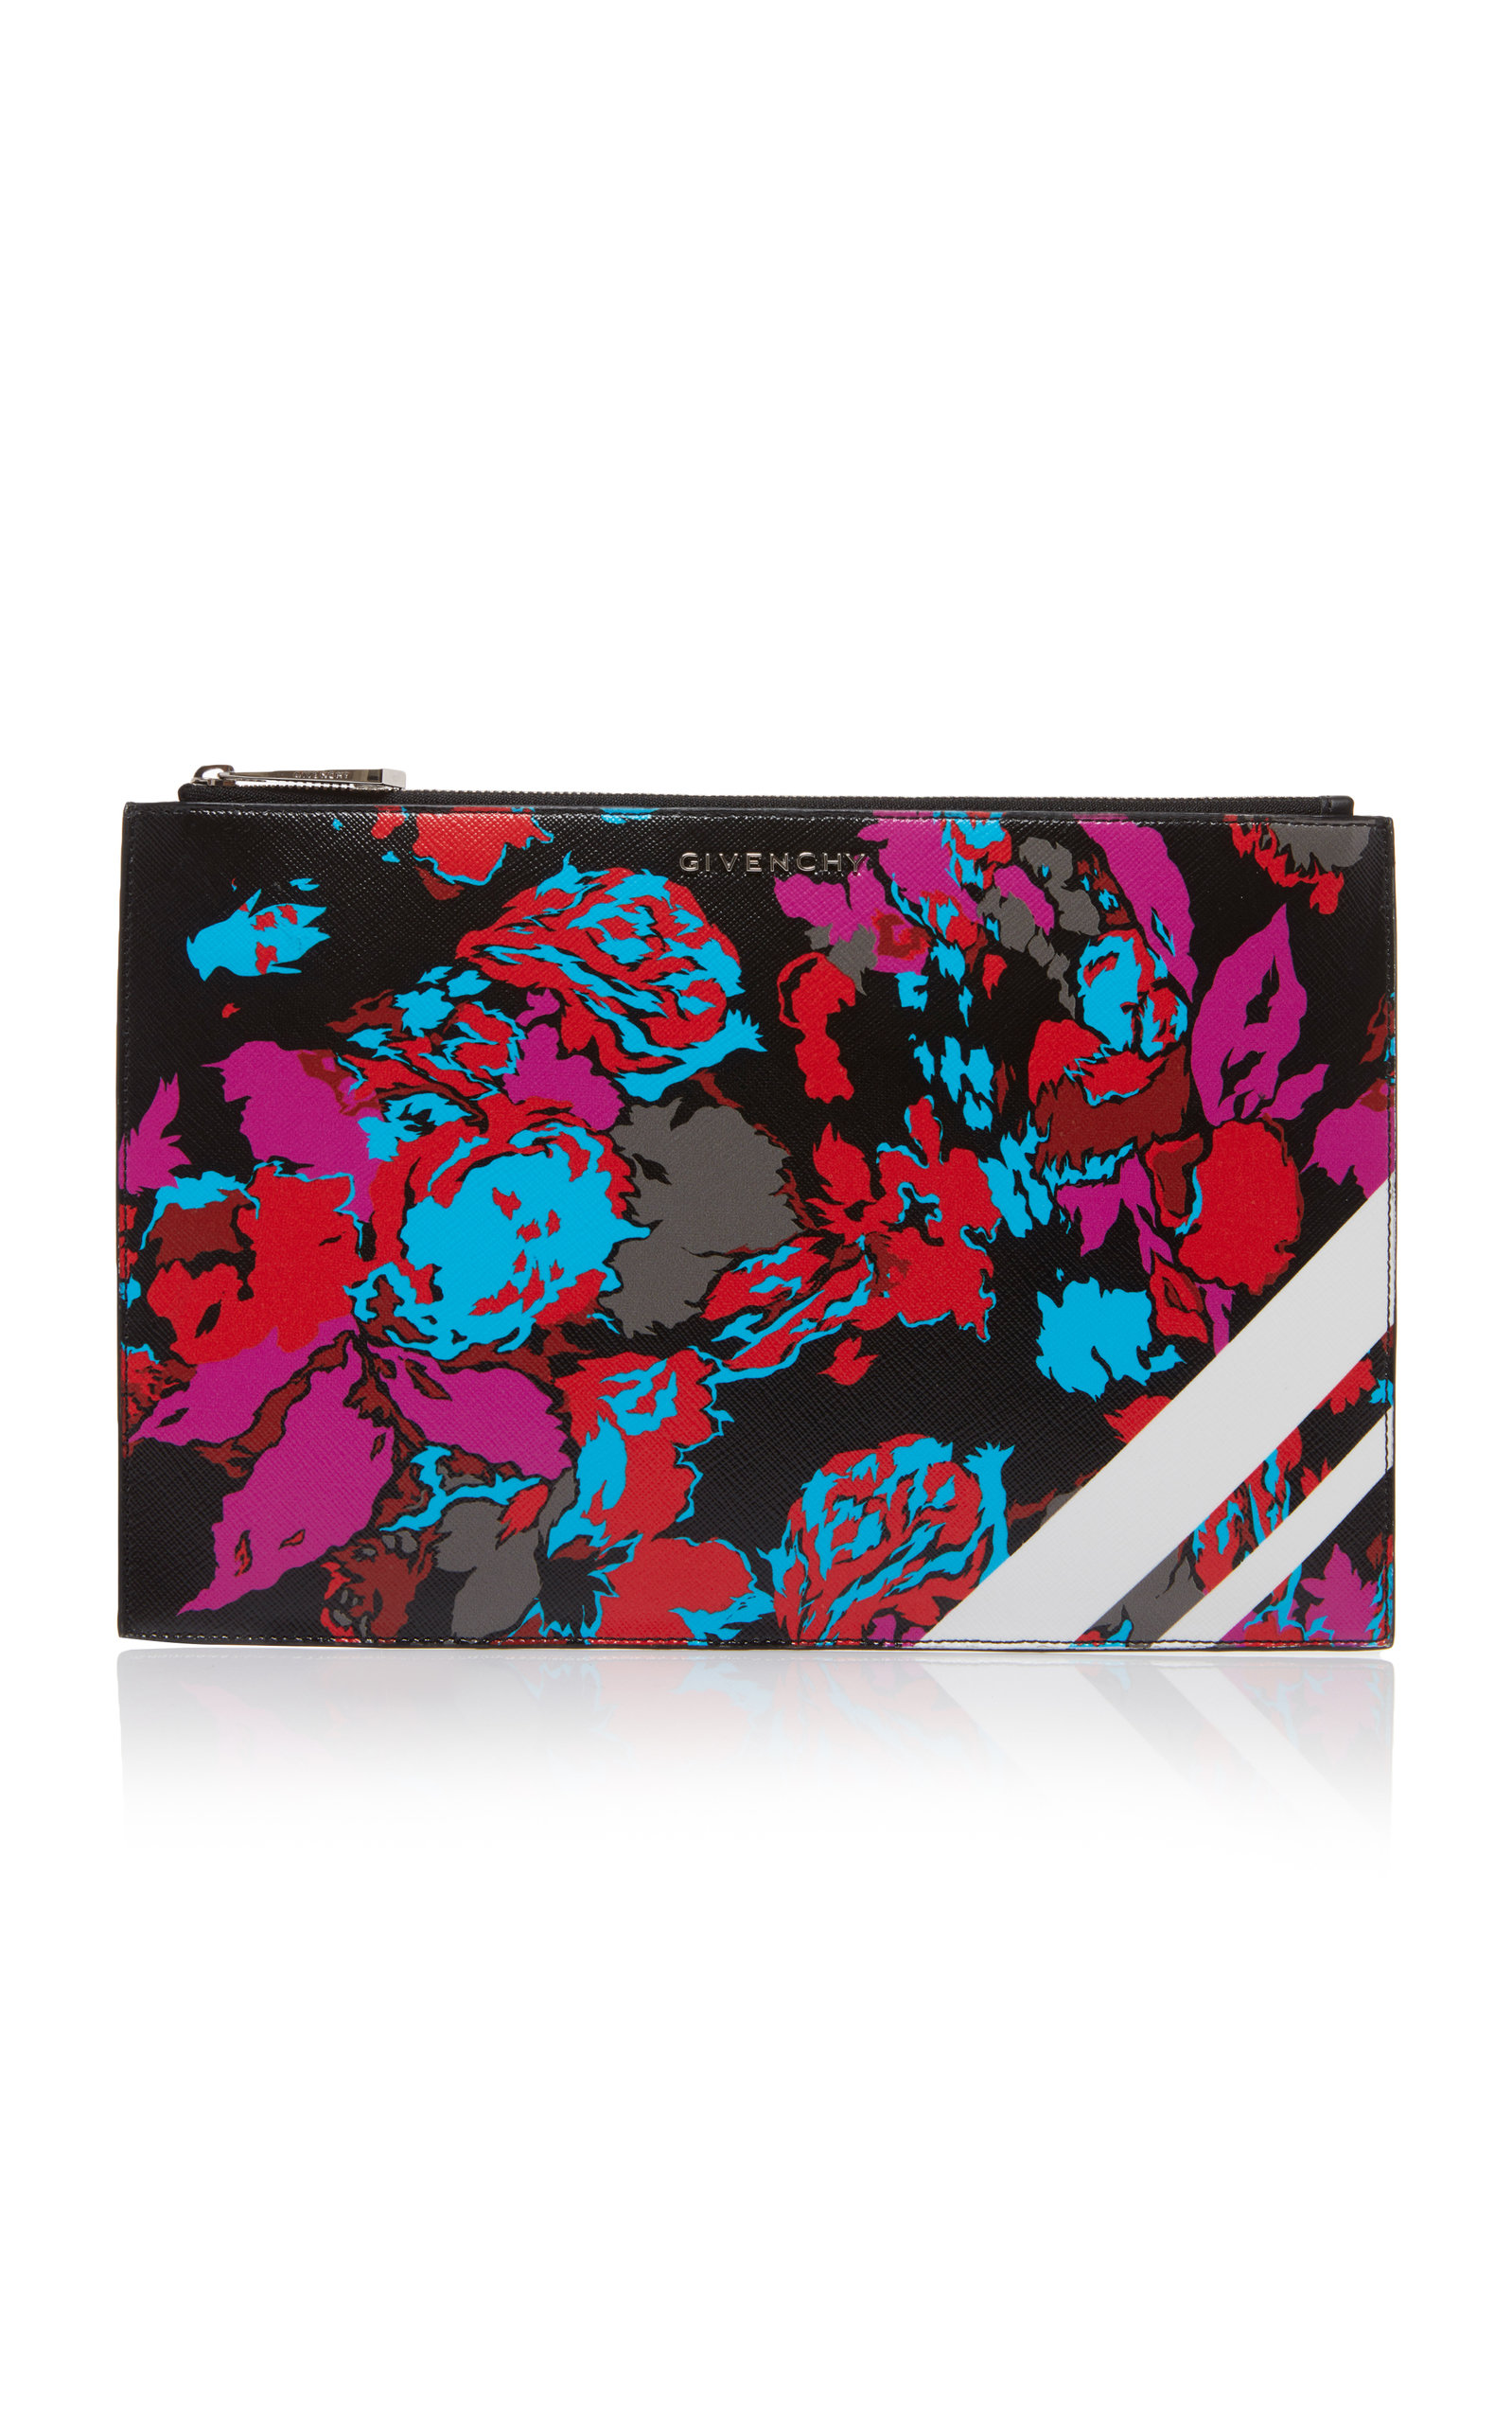 Medium Iconic Flower Print Pouch - Black in Multi